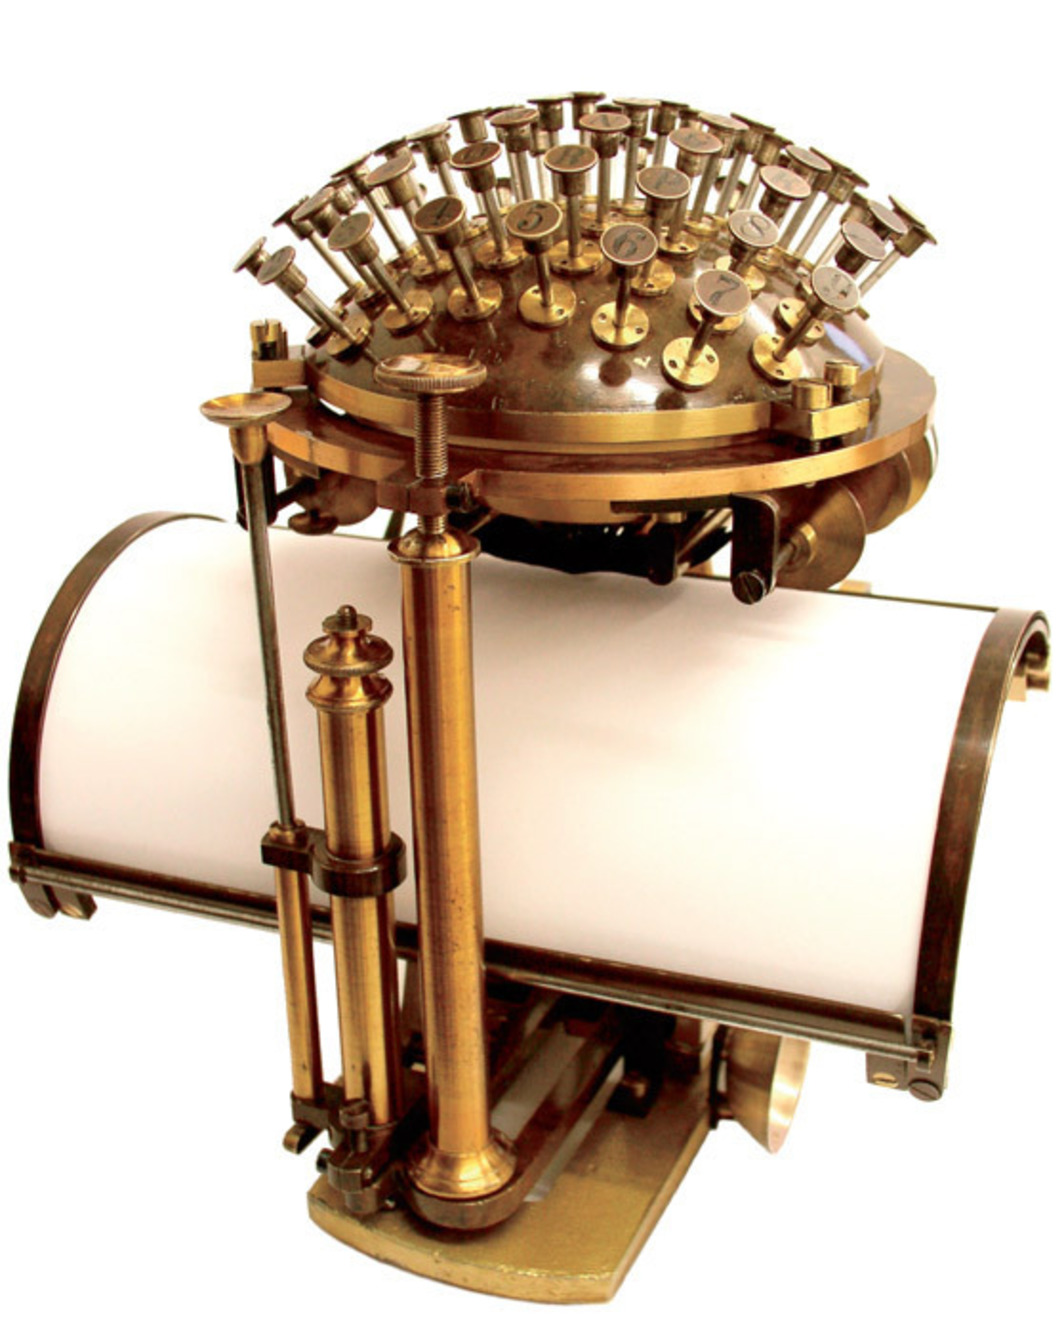 Friedrich Nietzsche's typewriter, an 1878 Malling- Hansen writing ball. Photo: Dieter Eberwein.